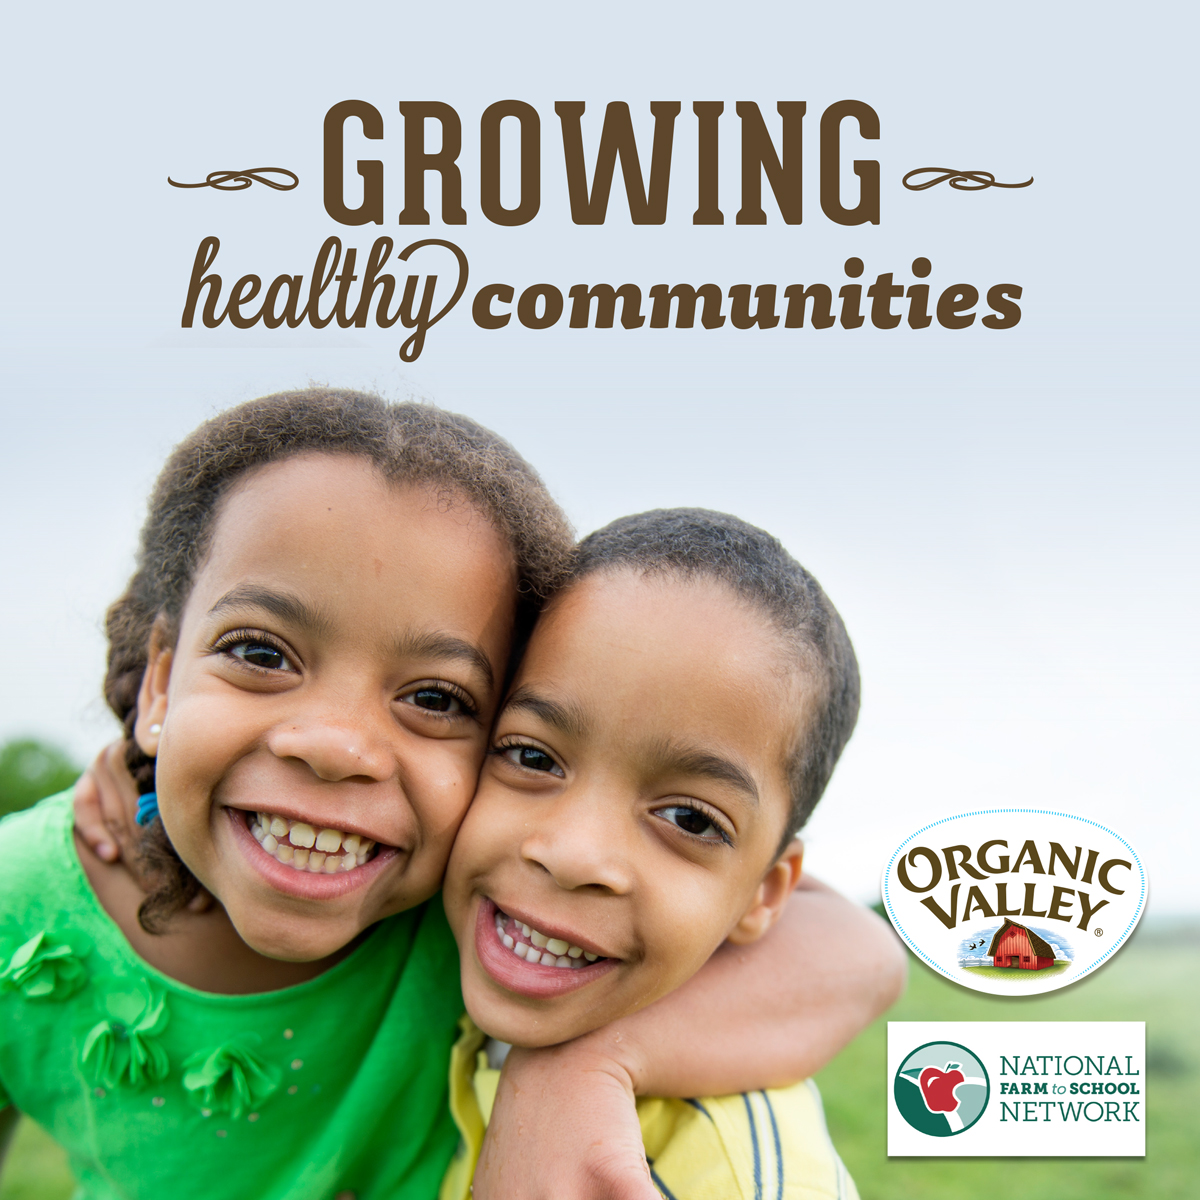 Organic_Valley_Cause_Promotion_0819_Social_Graphic_1.jpg